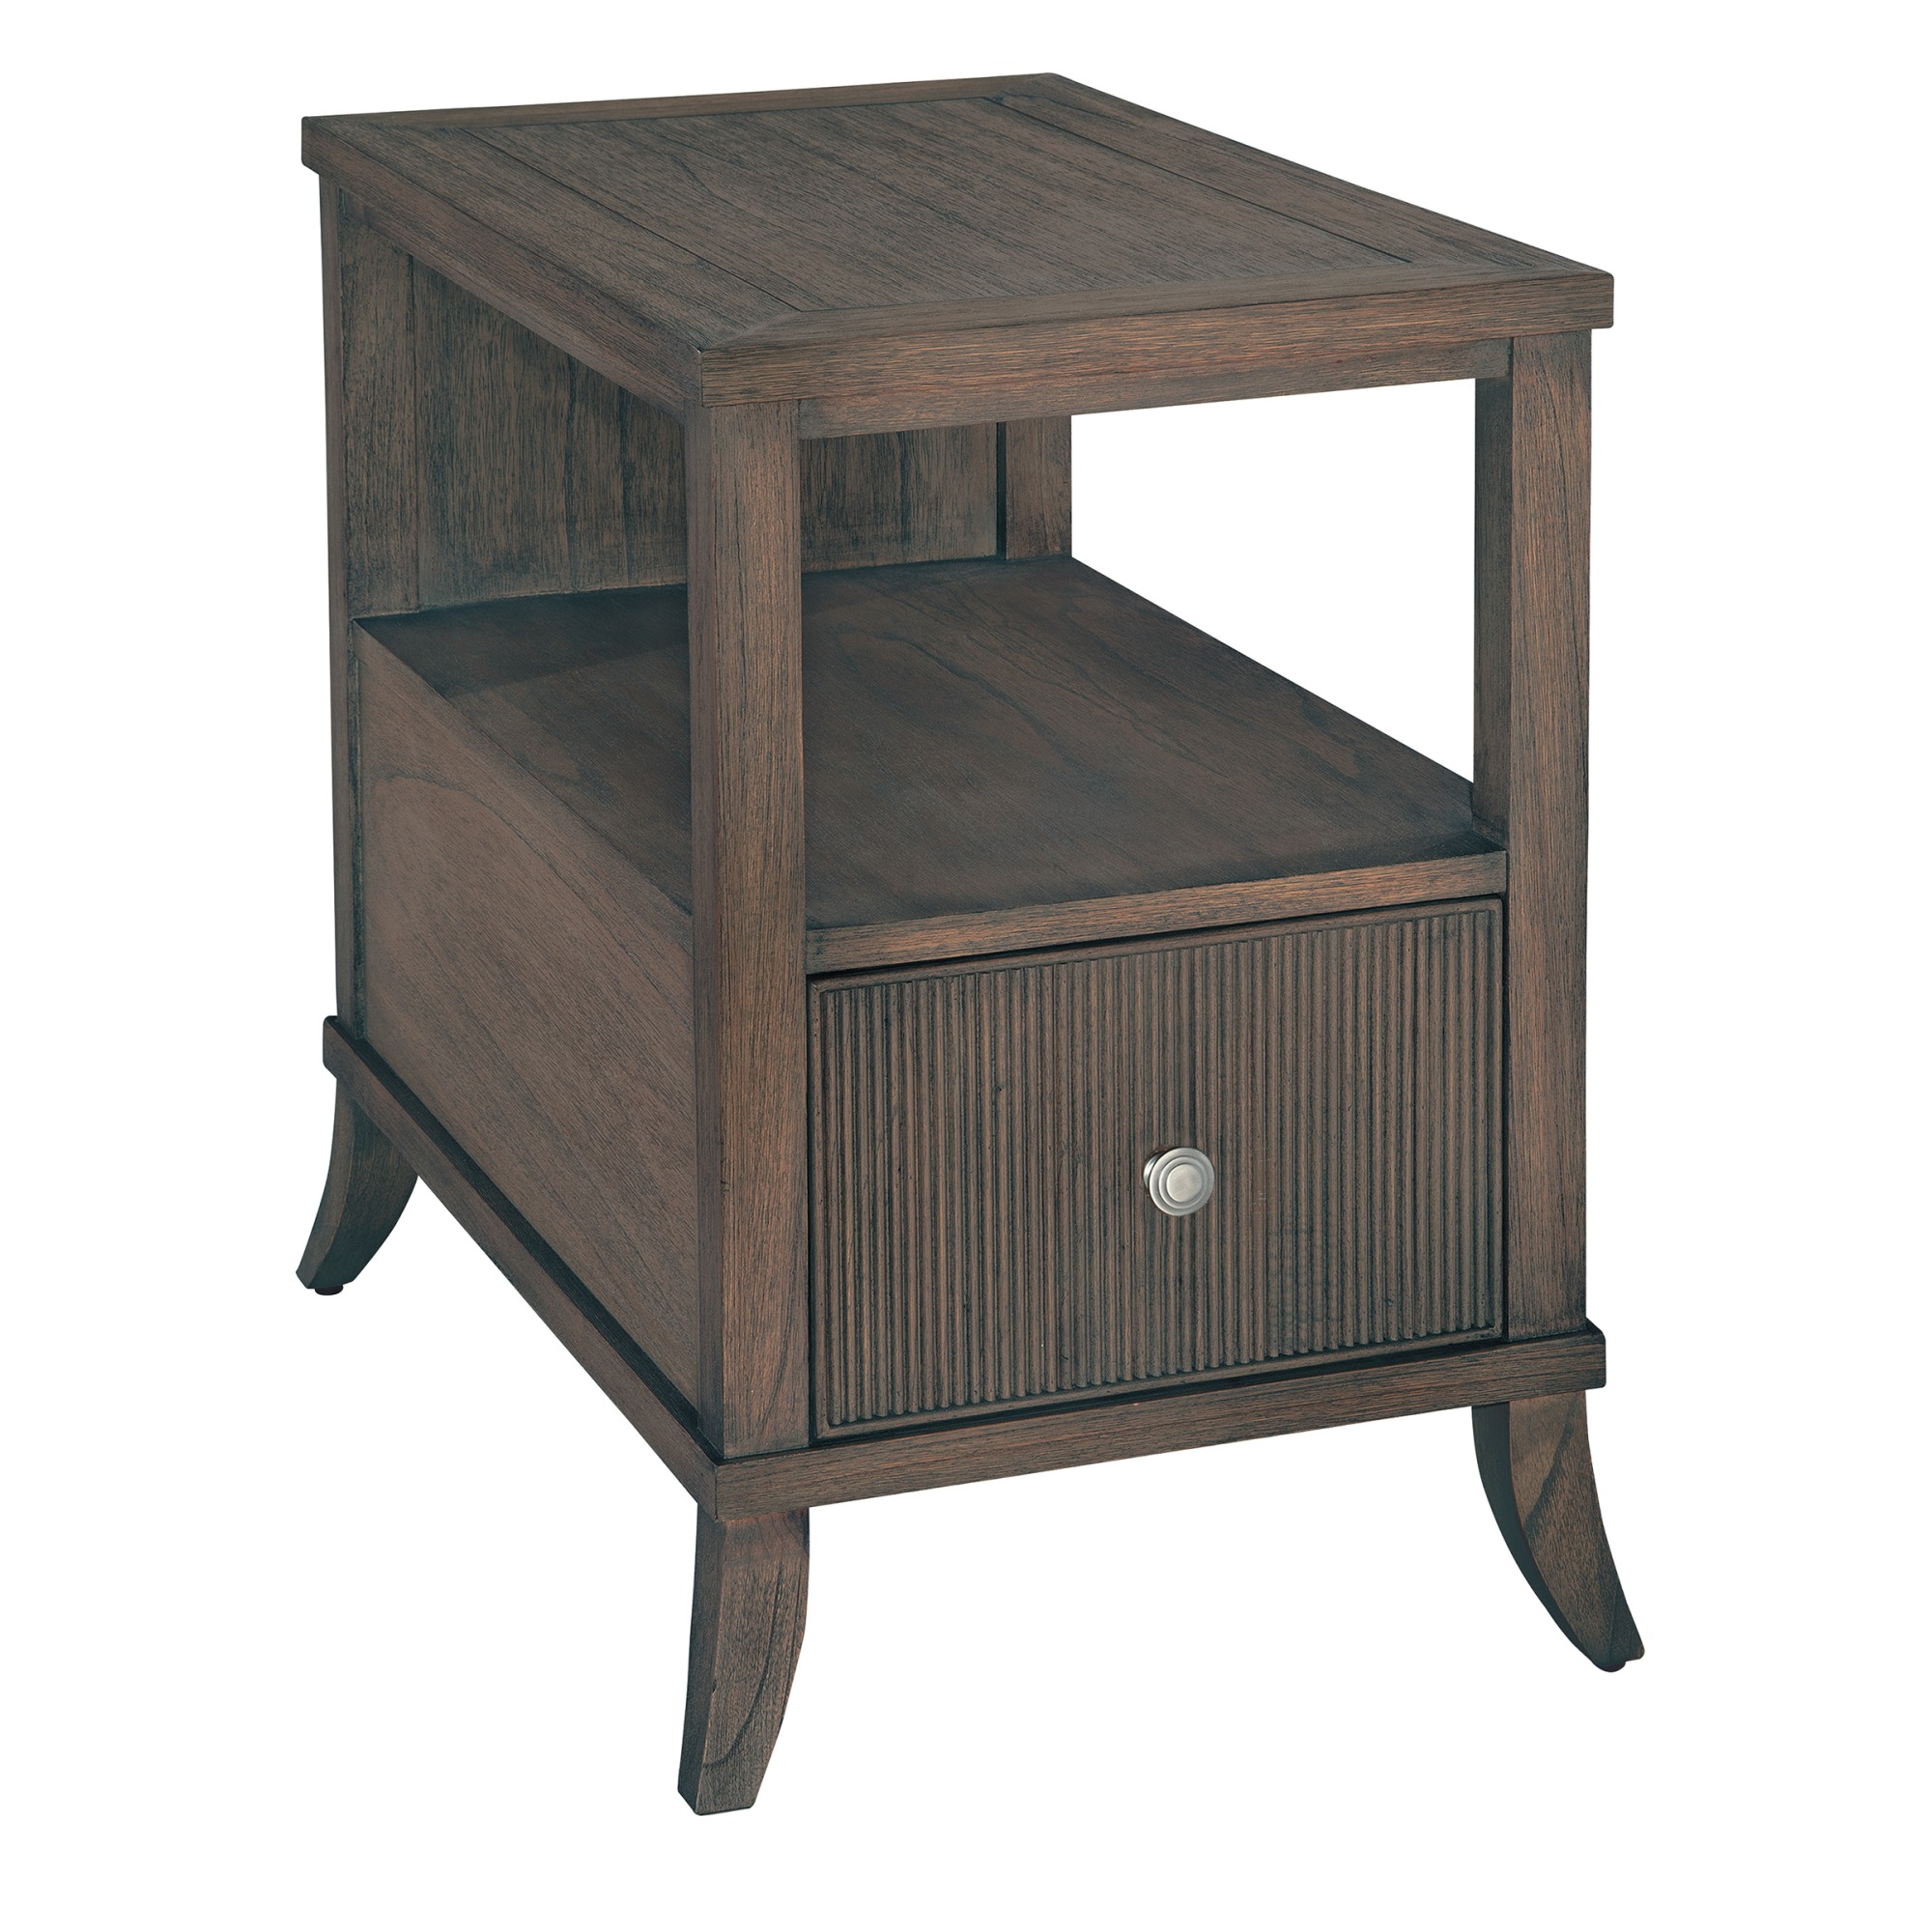 Image for 952205SU Urban Retreat Chairside Table with Drawer from Hekman Official Website